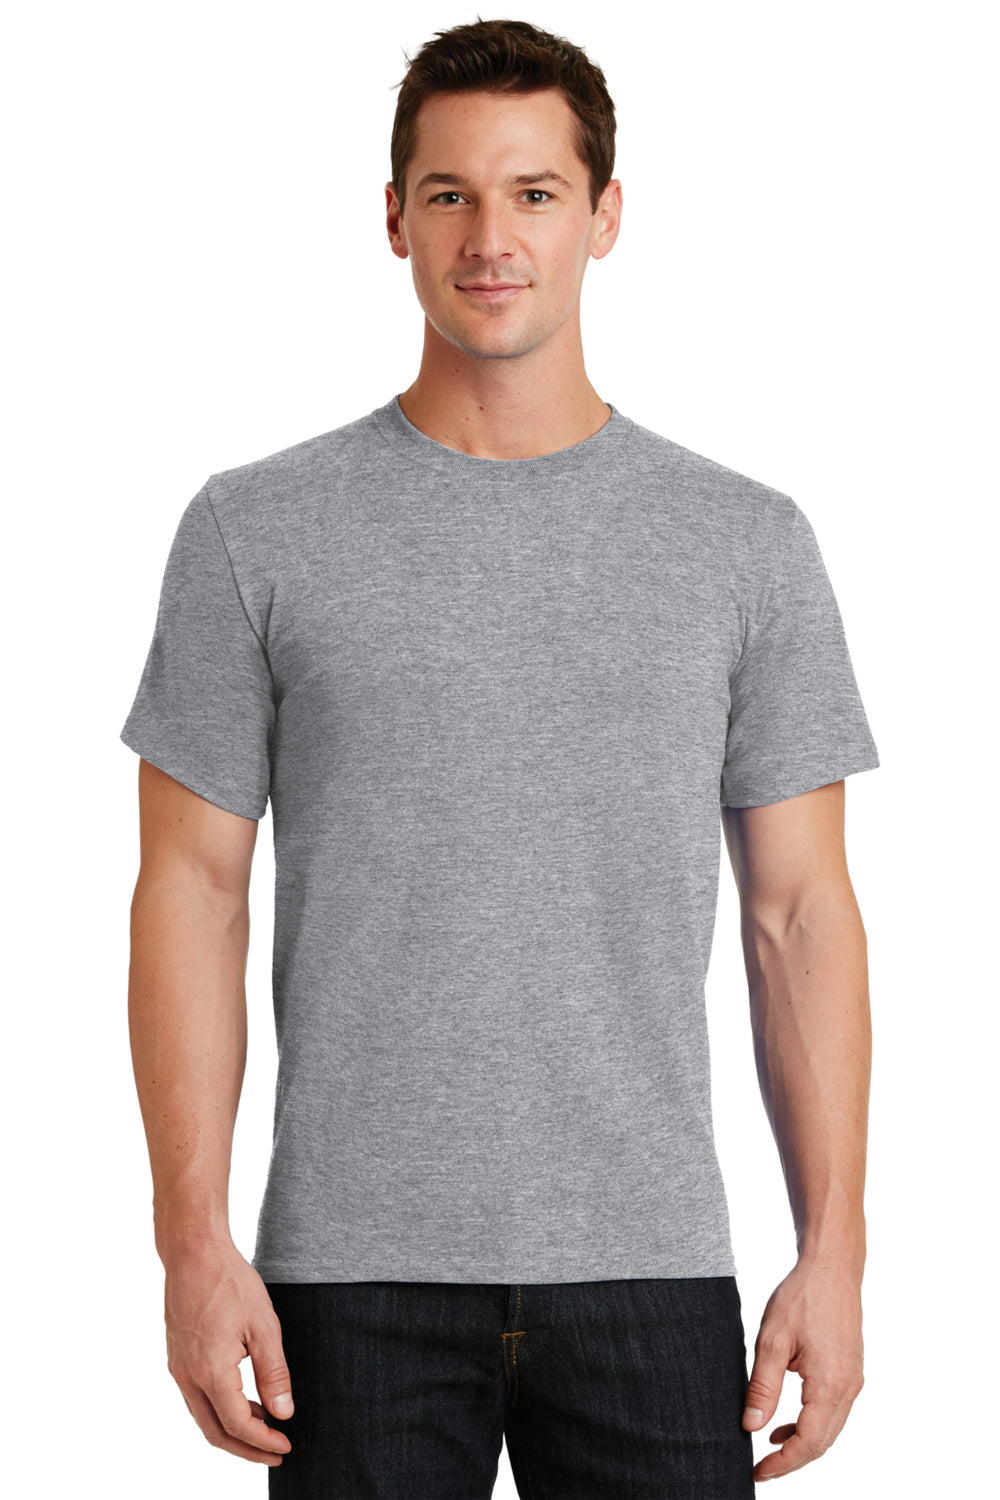 Port & Company PC61 Mens Essential Short Sleeve Crewneck T-Shirt Heather Grey Front